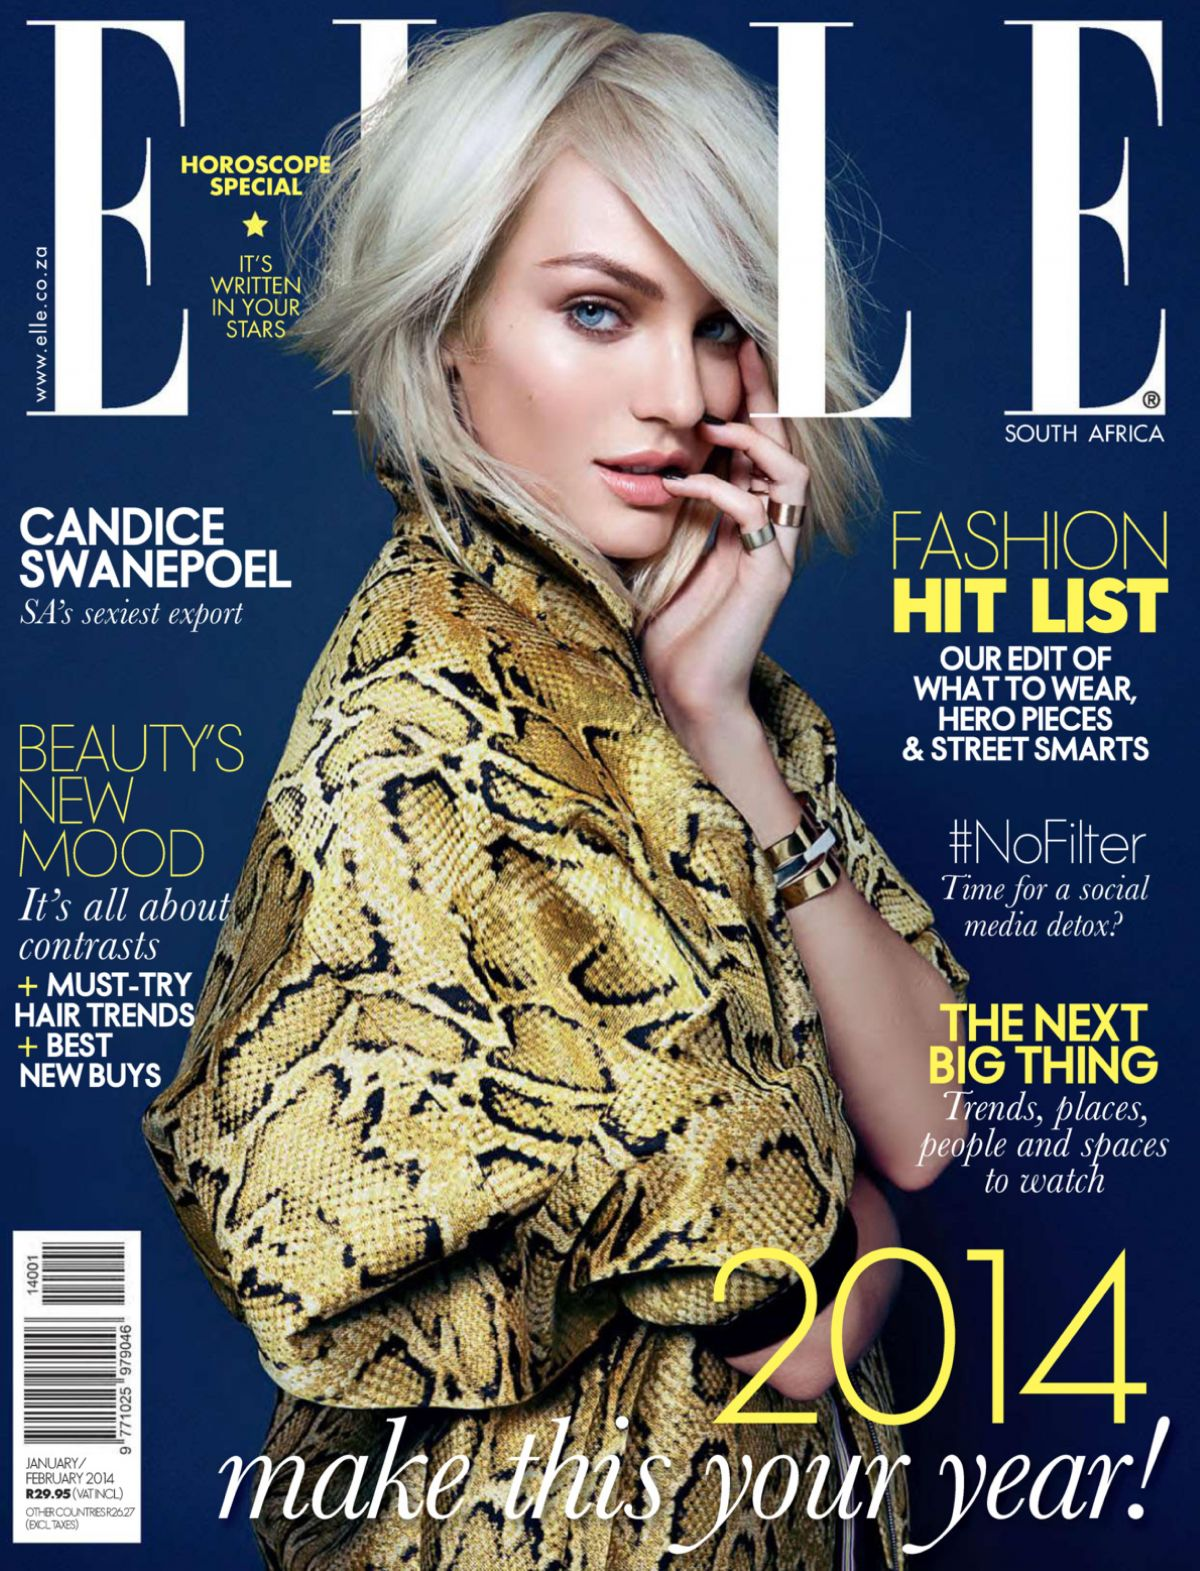 CANDICE SWANEPOEL in Elle Magazine, South Africa January 2014 Issue